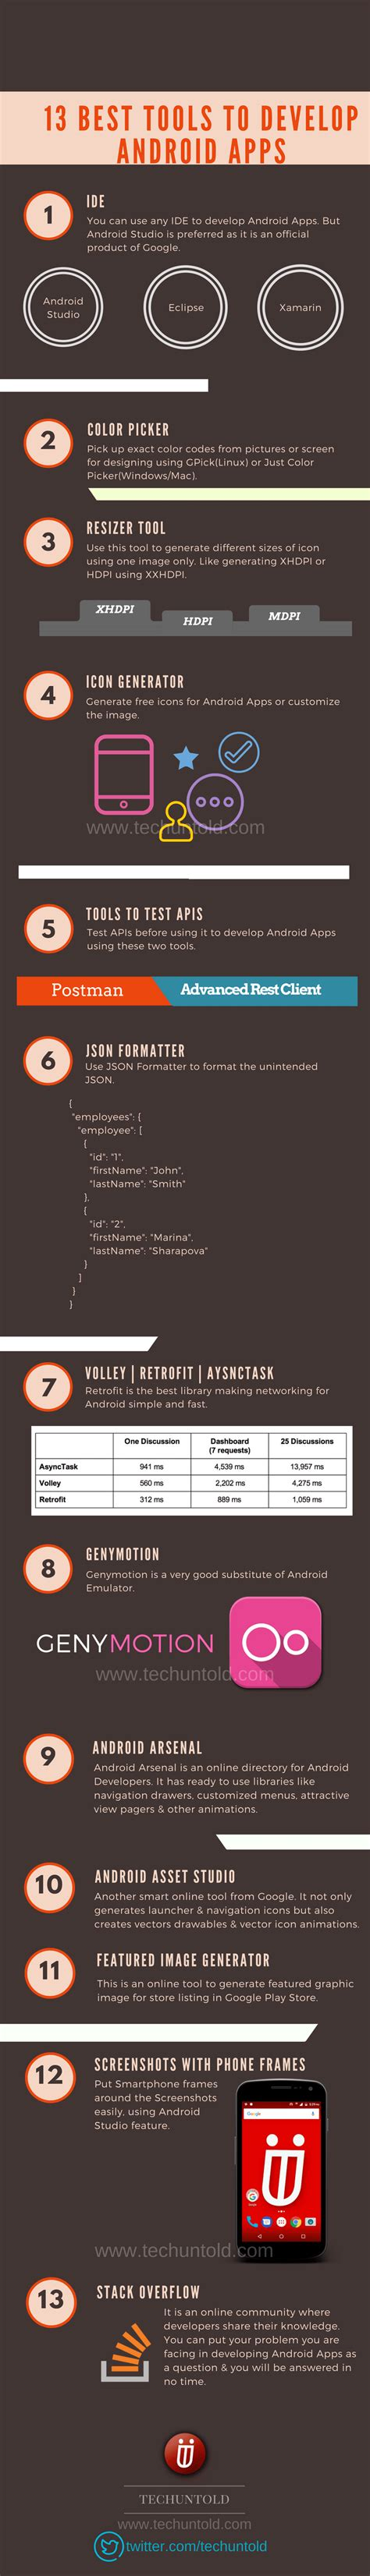 develop android apps 13 best tools to develop android apps infographic